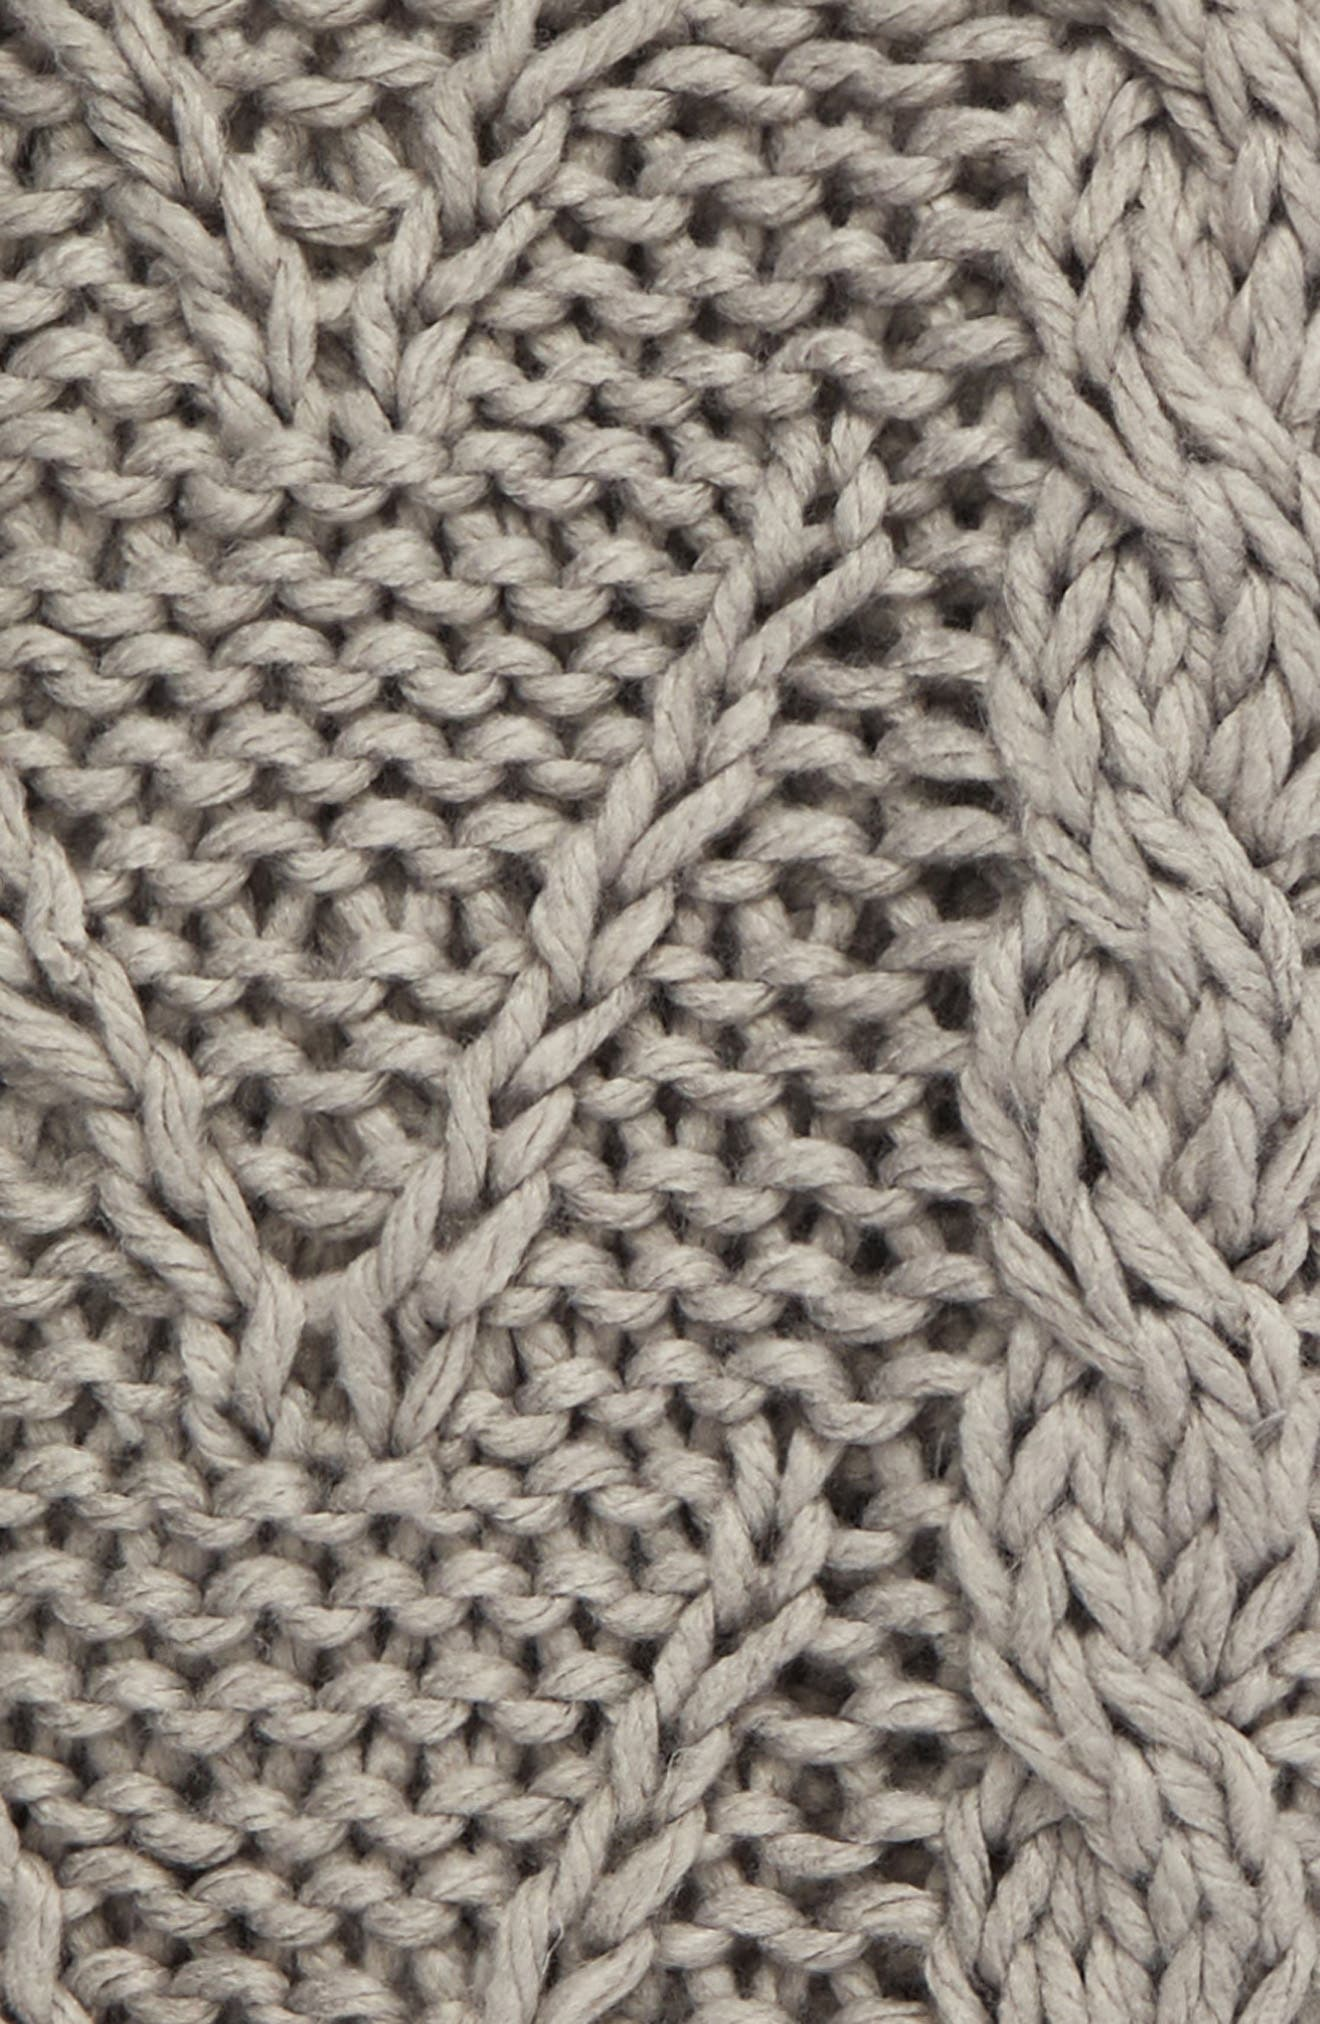 Cable Knit Tassel Throw Blanket,                             Alternate thumbnail 2, color,                             020